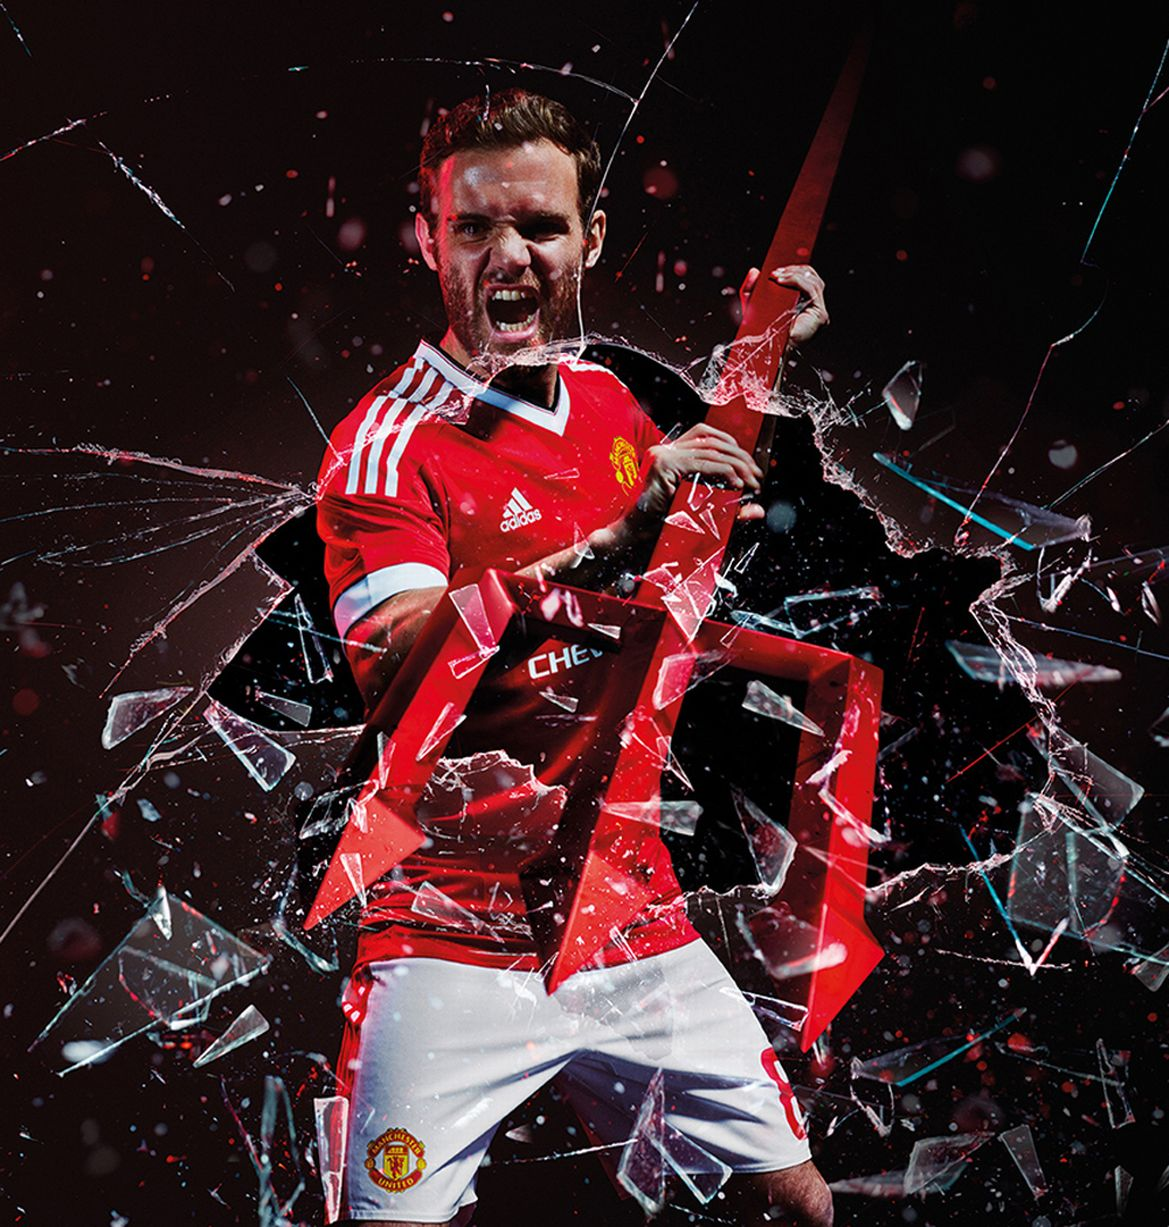 Adidas-Manchester-United-201516-kit-launch (1)